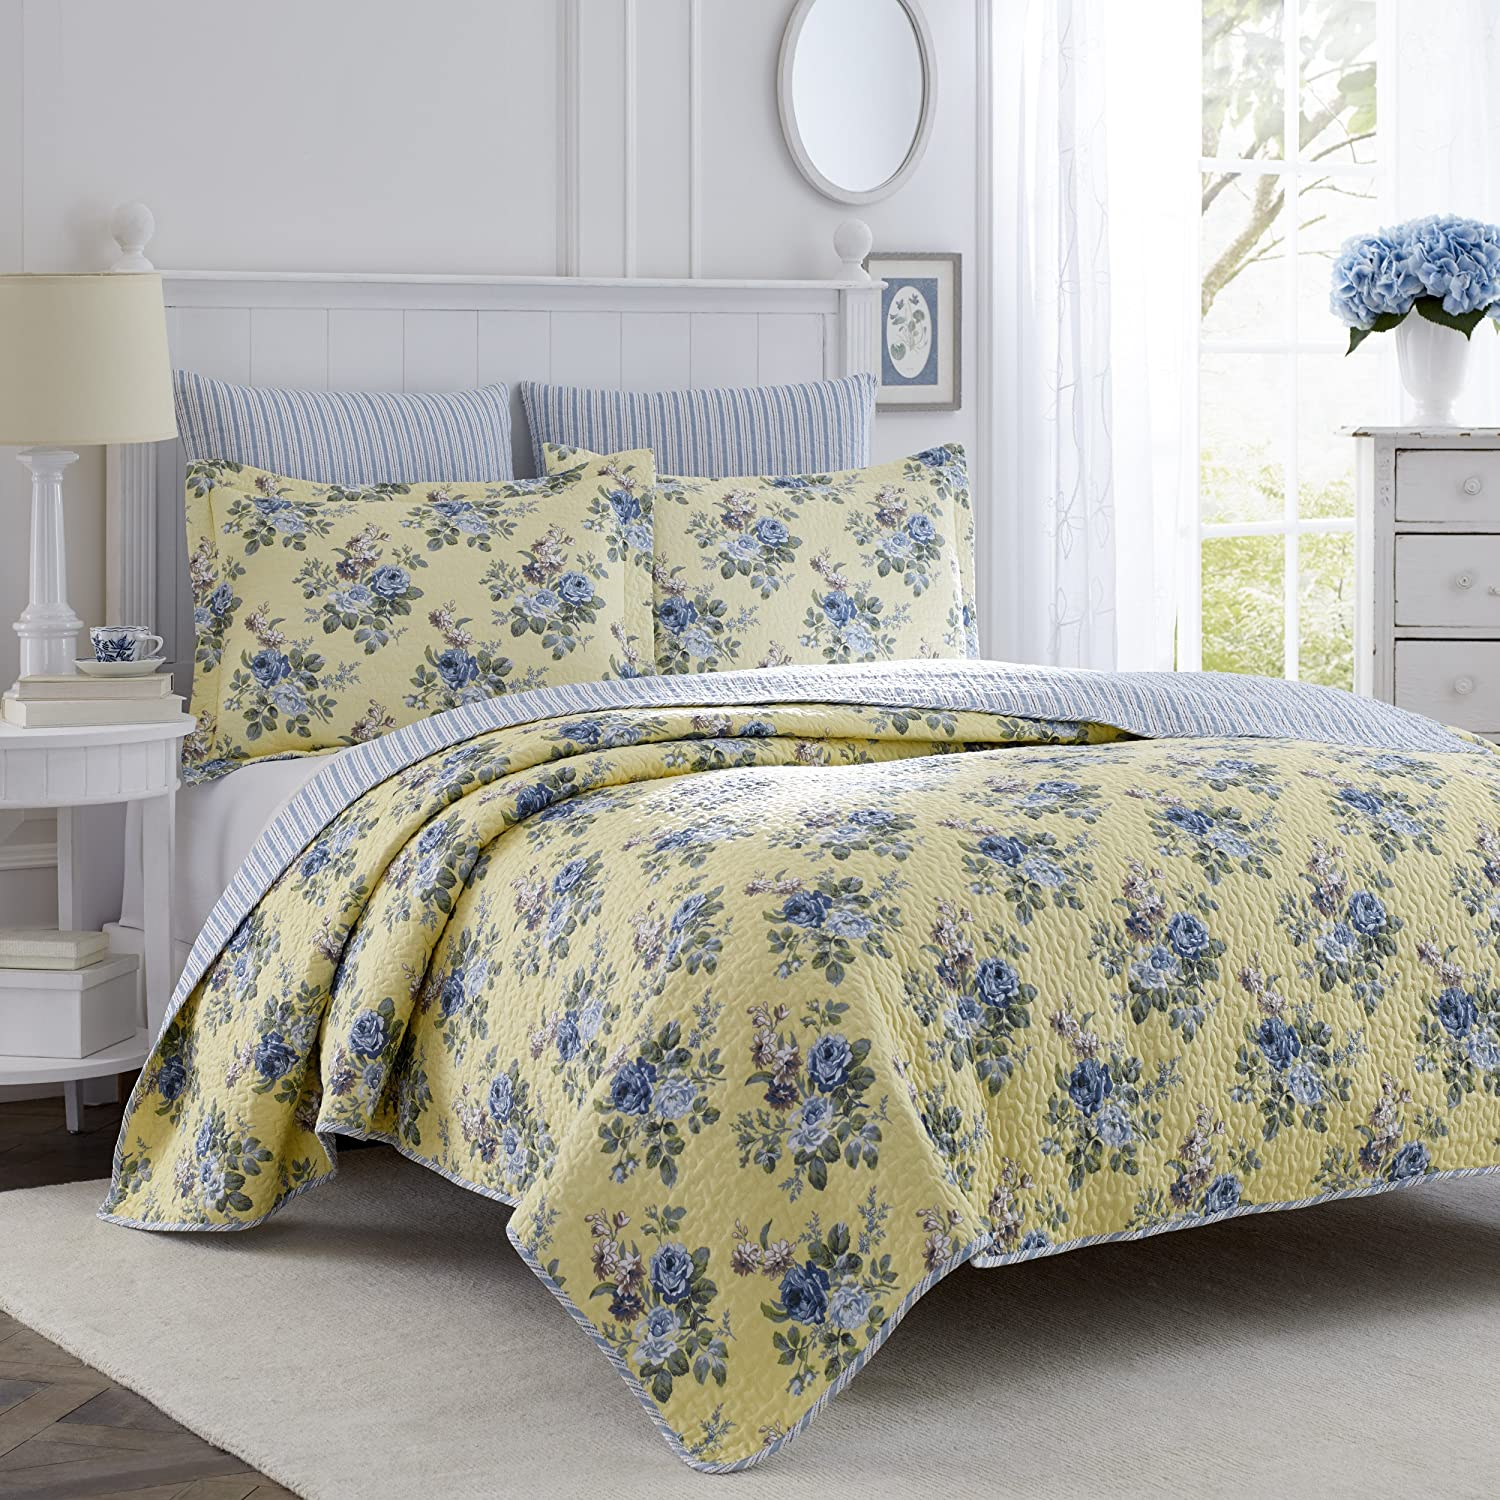 Amazon.com: Laura Ashley Linley Quilt Set, Full/Queen: Home & Kitchen : laura ashley caroline quilt - Adamdwight.com